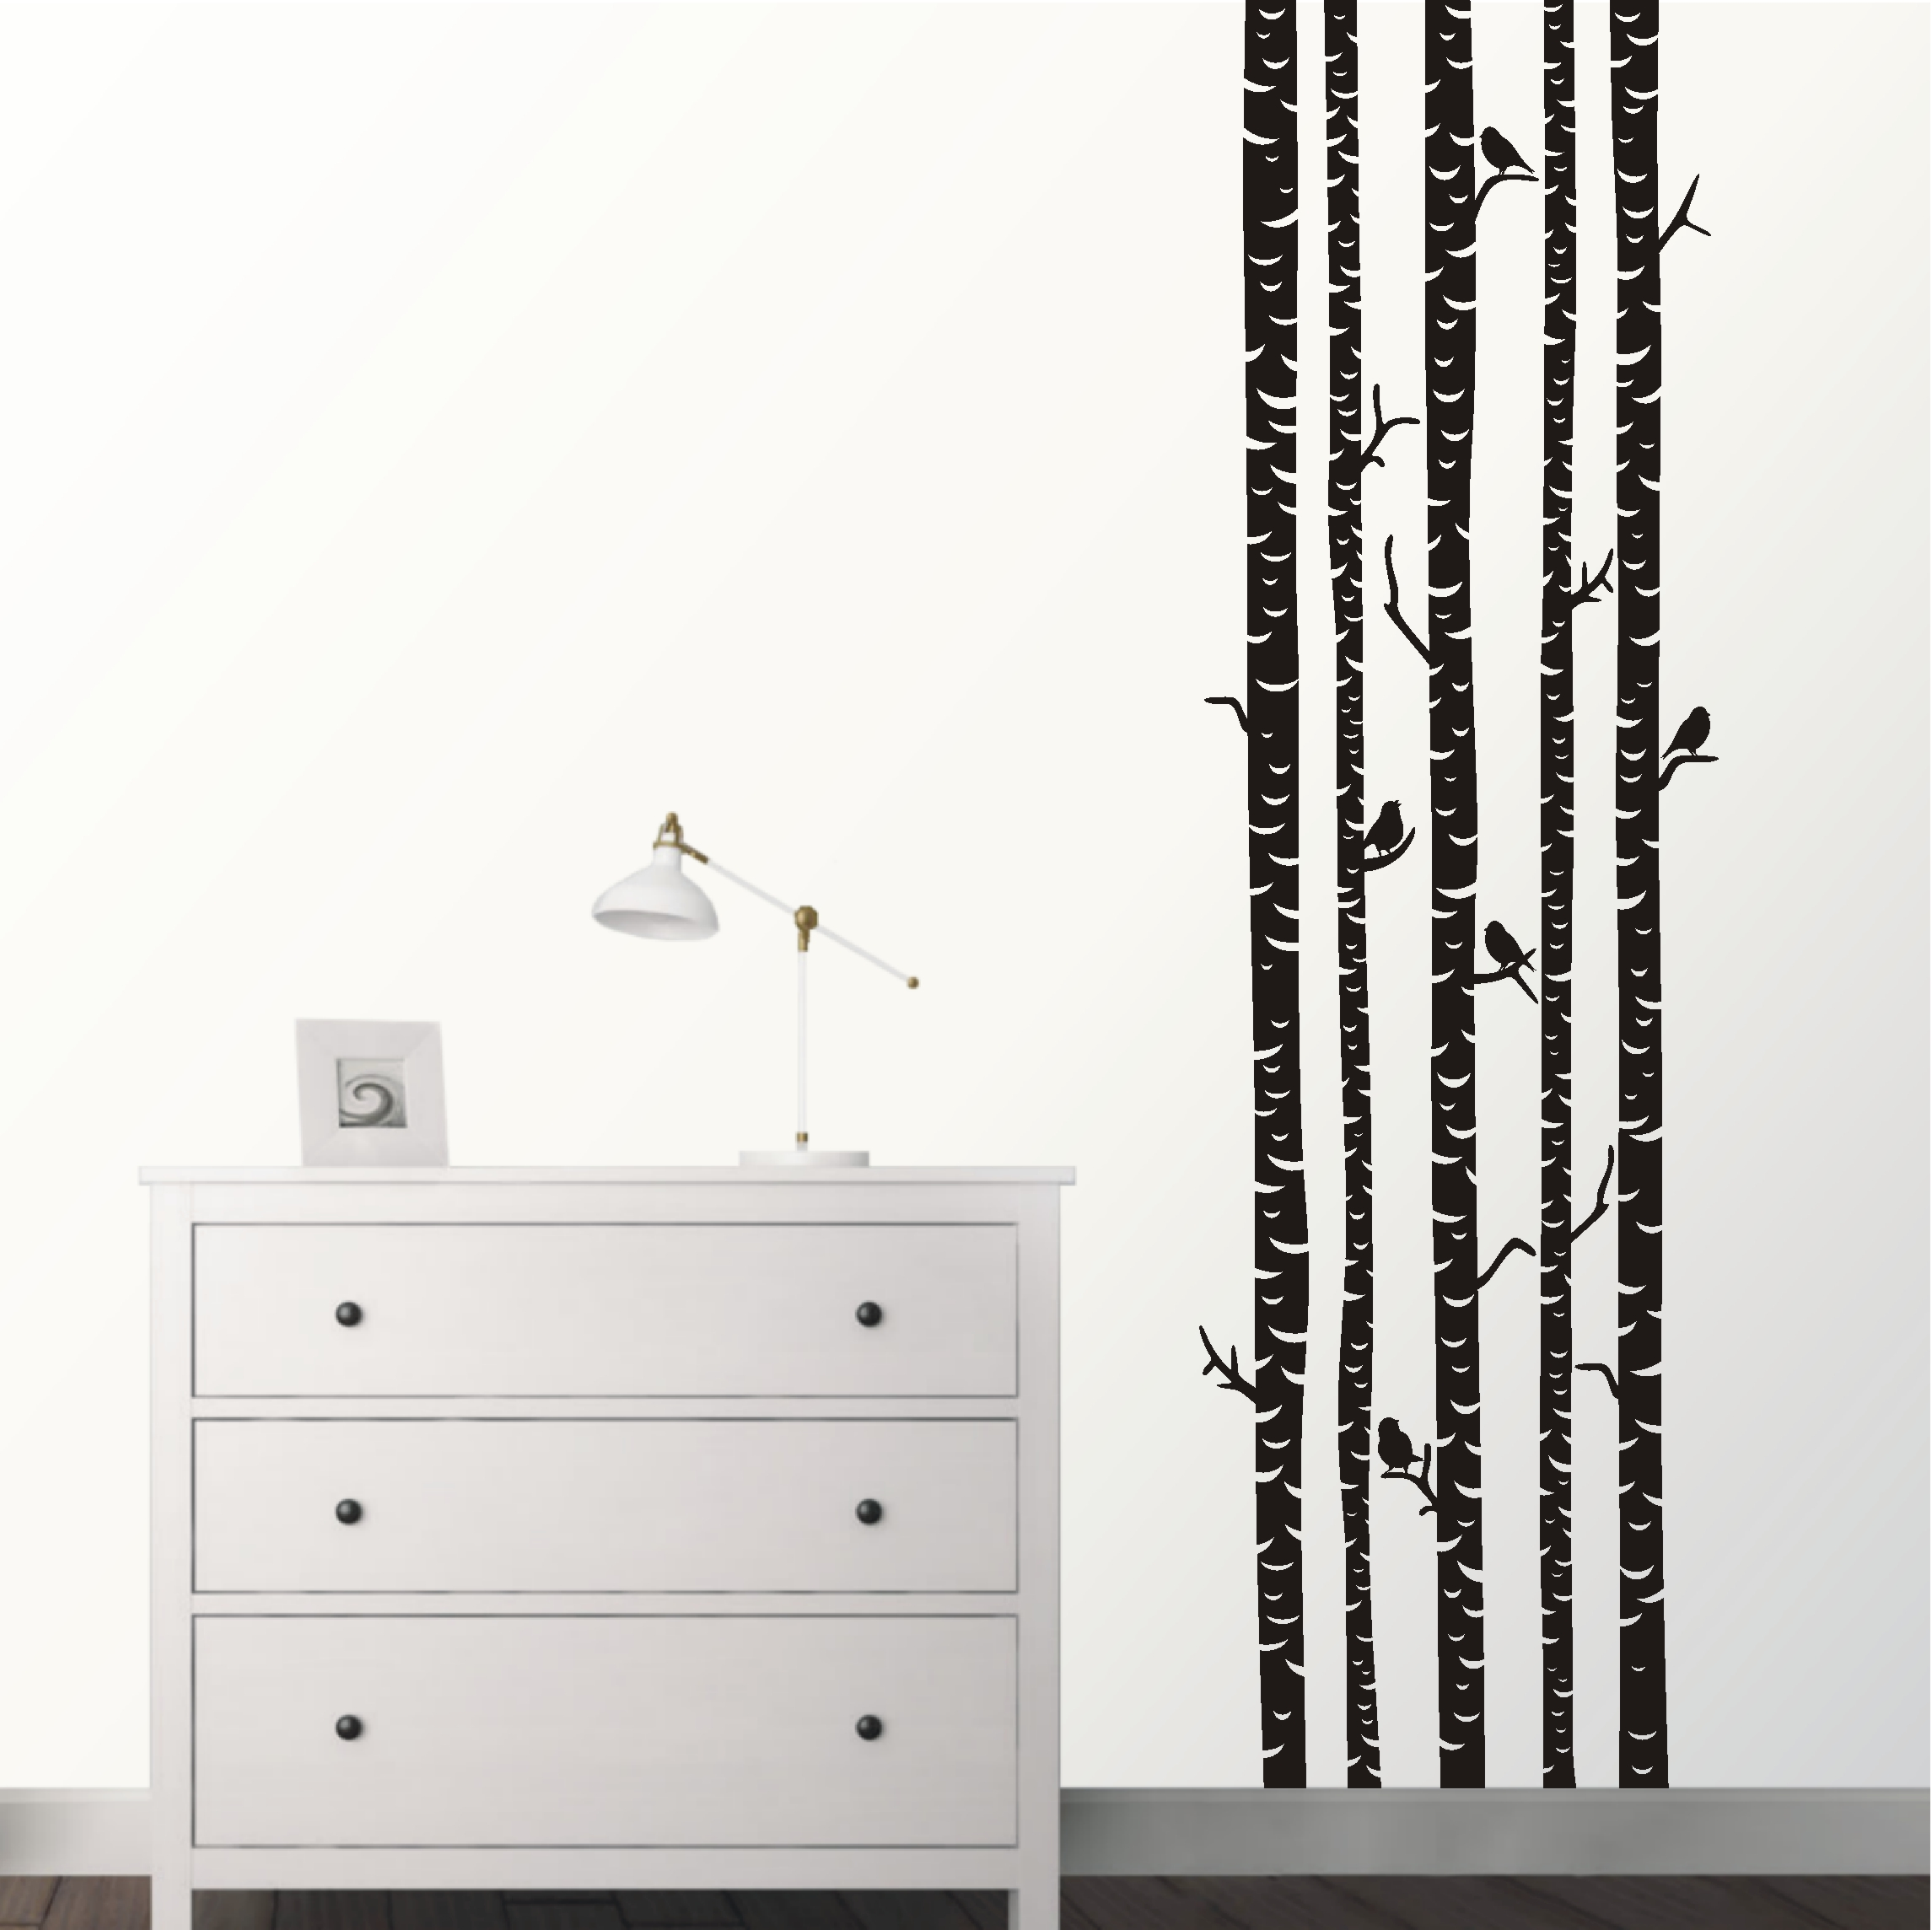 wandtattoo rauhfaser entfernen wandtattoo 68167 58x29 cm. Black Bedroom Furniture Sets. Home Design Ideas